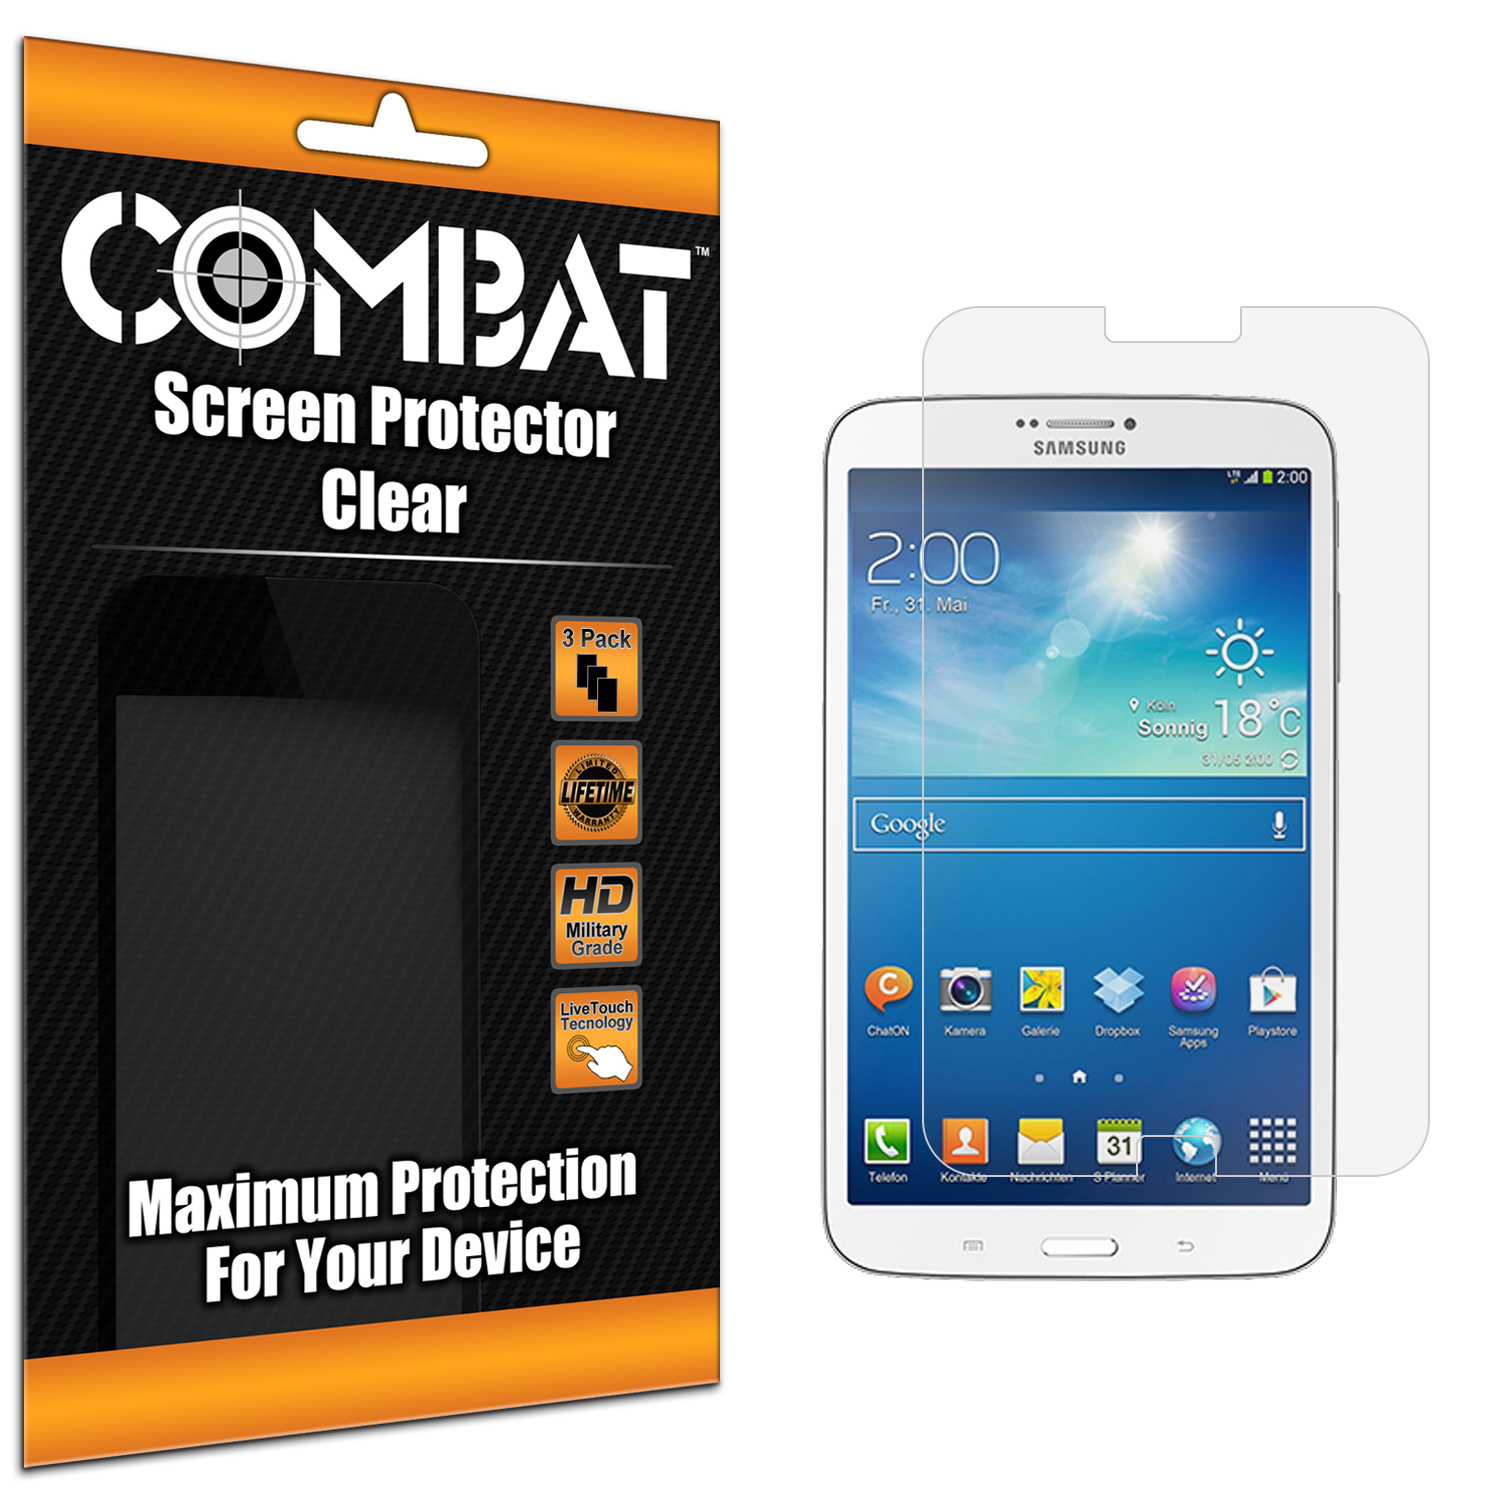 Samsung Galaxy Tab 3 7.0 Combat 3 Pack HD Clear Screen Protector